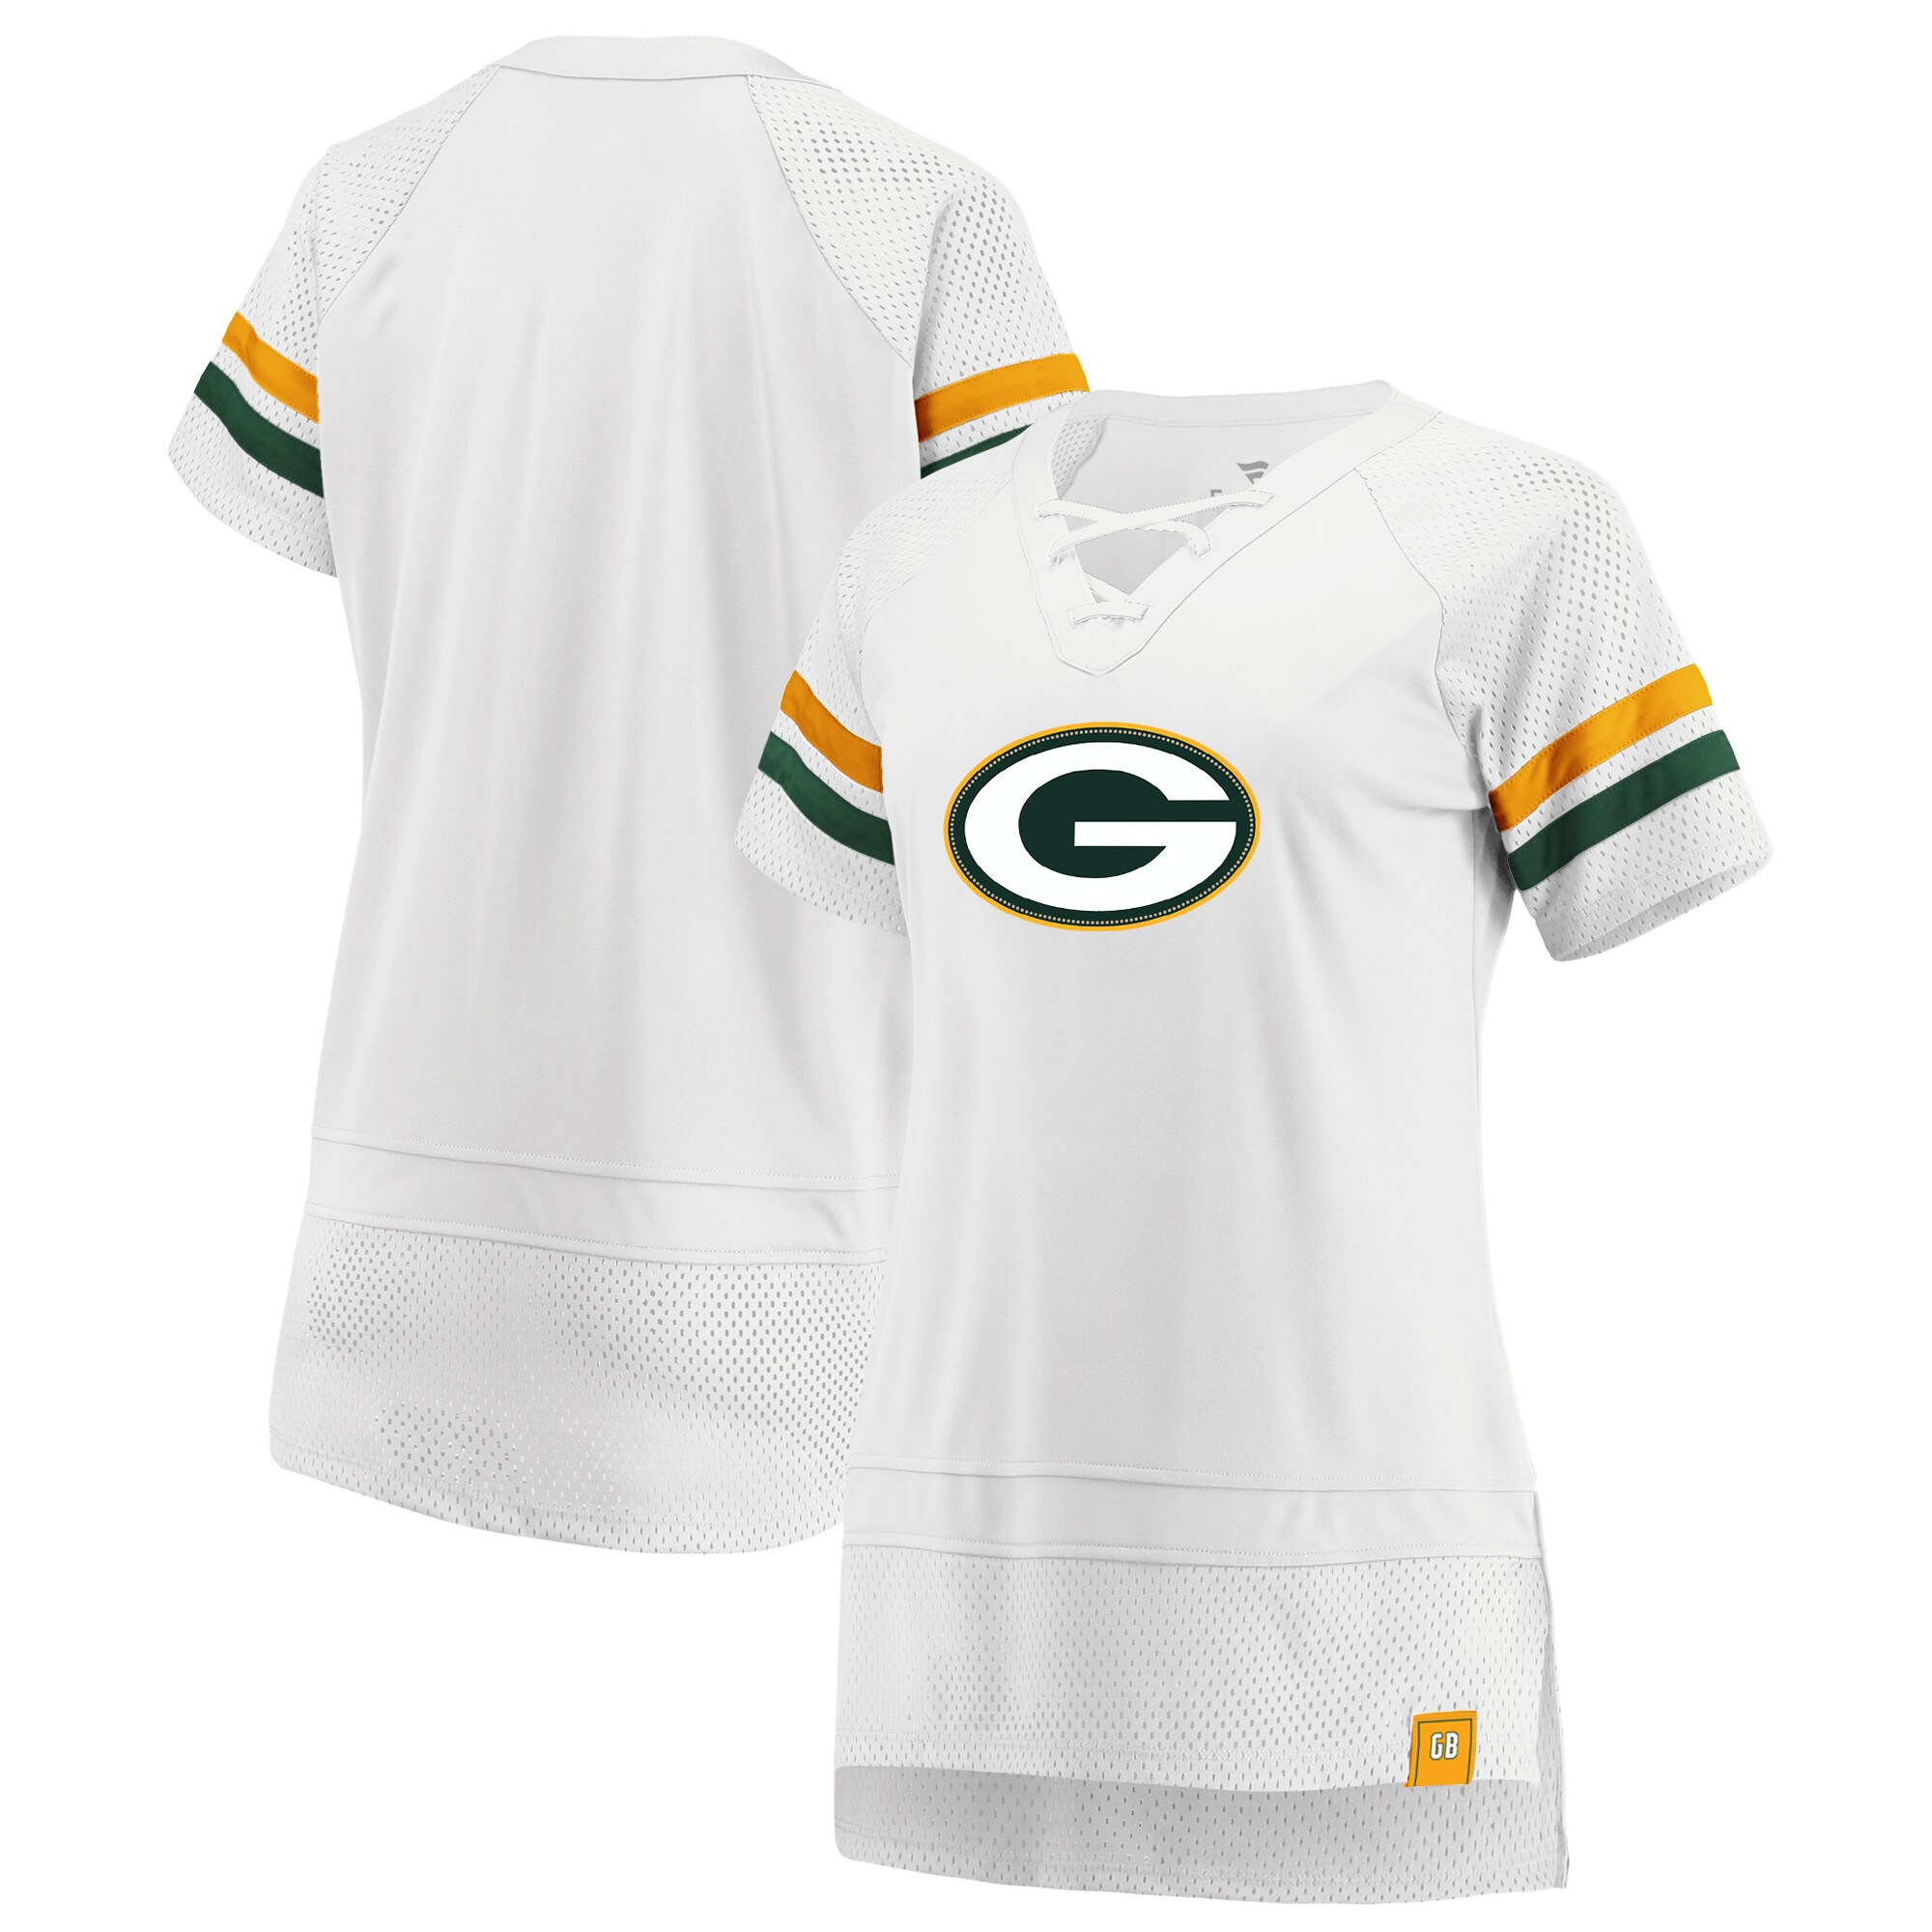 Green Bay Packers Fanatics Branded Women's Draft Me Lace Up T-Shirt - White/Green